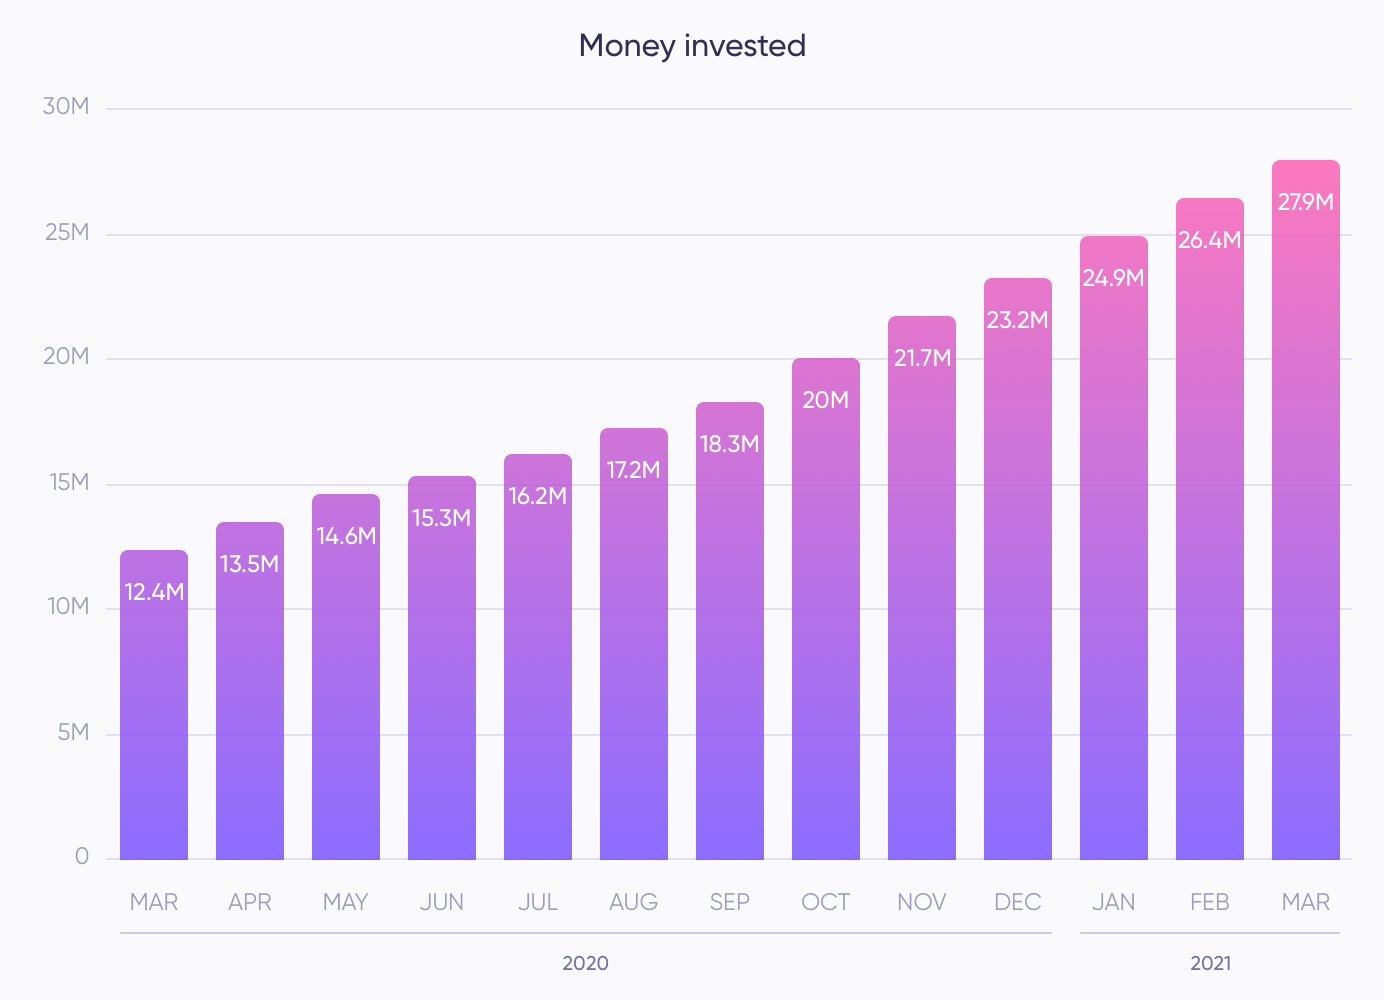 Money invested during March